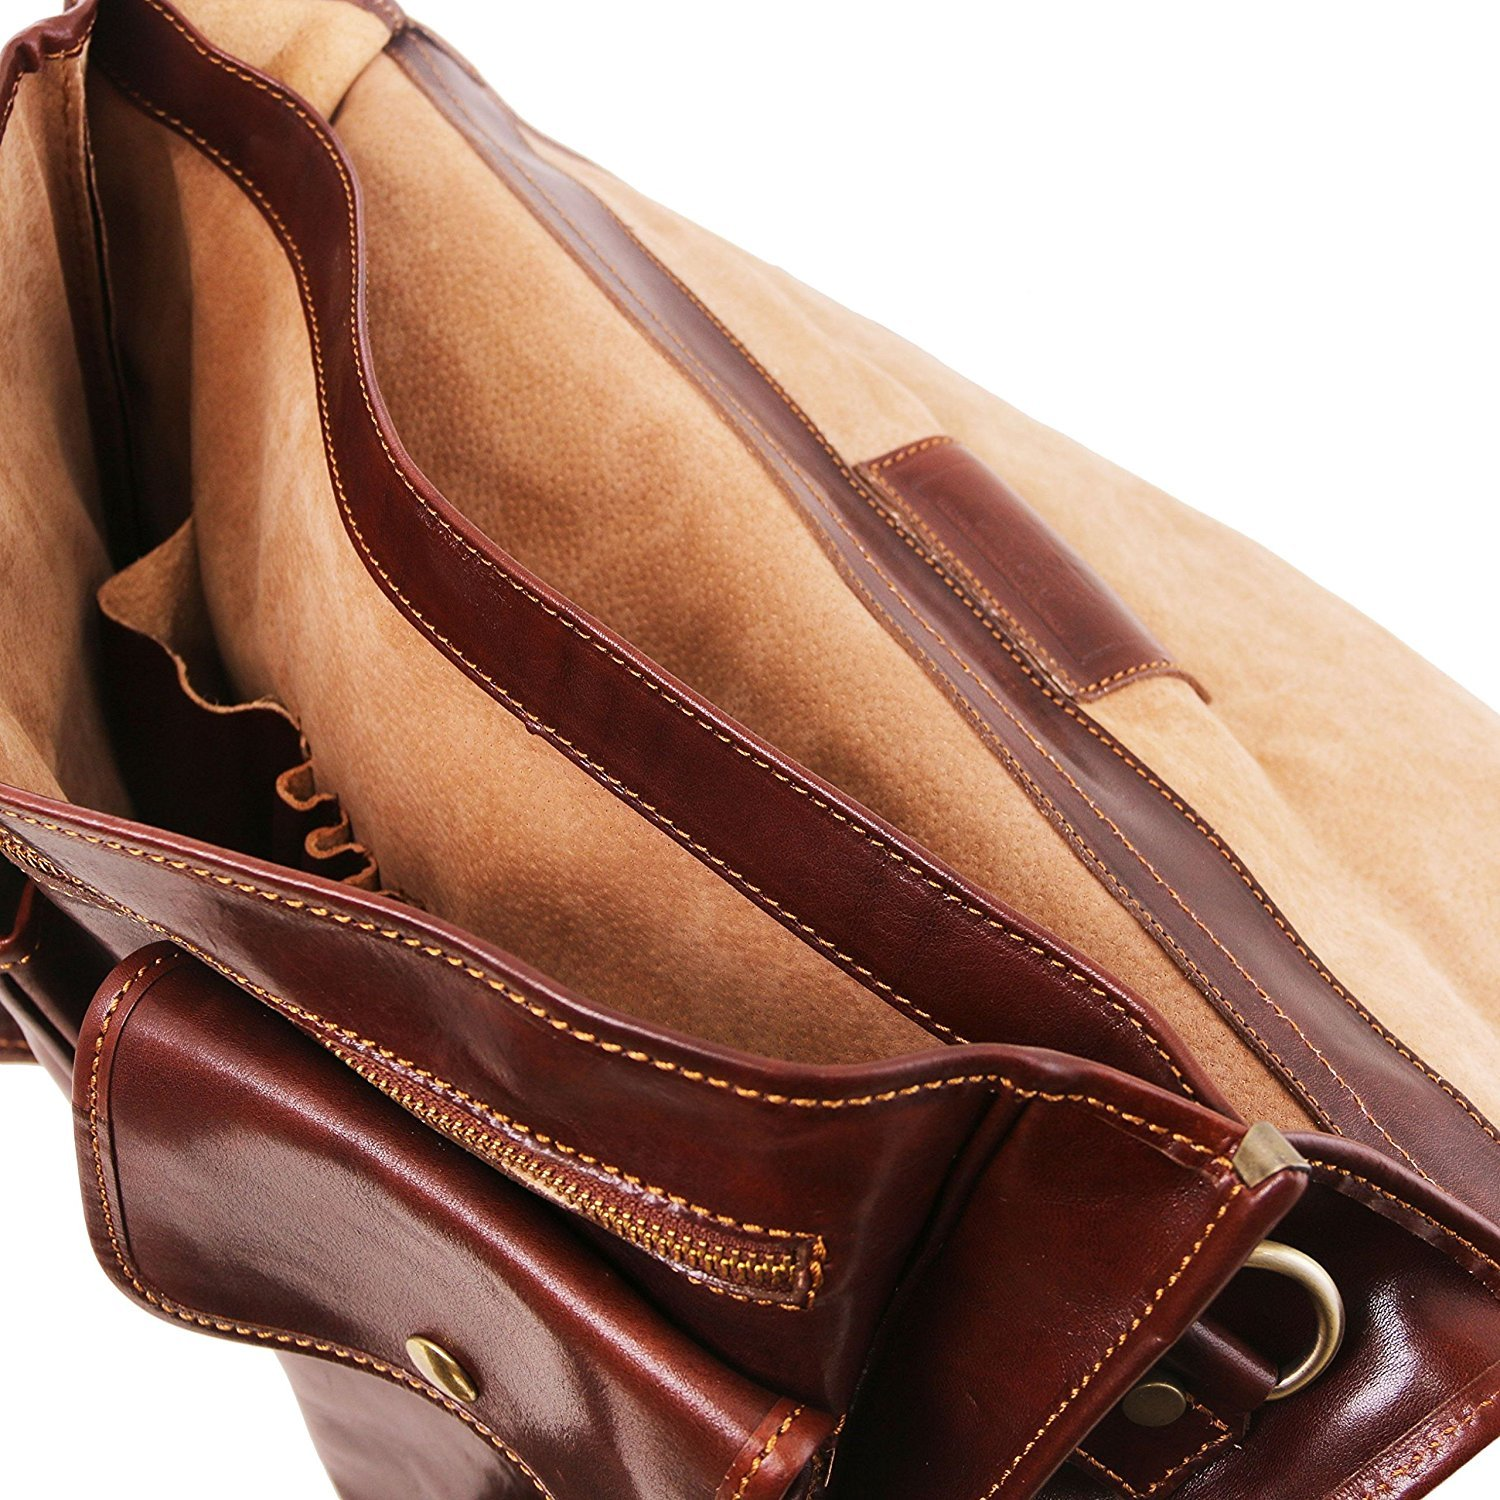 TL141134//1 Tuscany Leather Leather briefcase 2 compartments Brown Modena